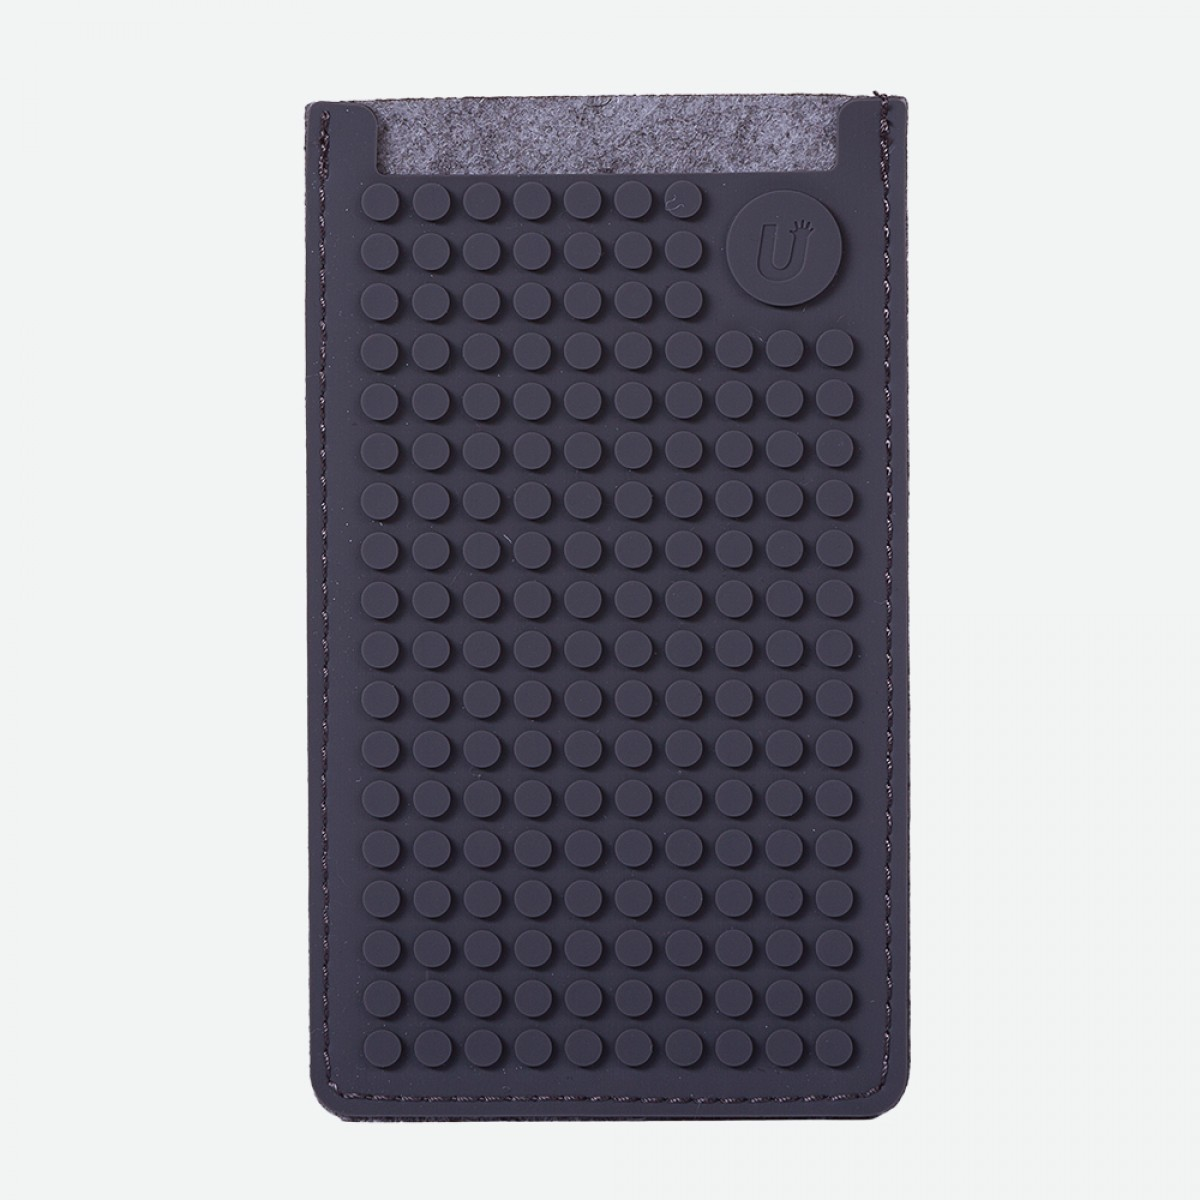 Pixel Phone Case Small - Grey